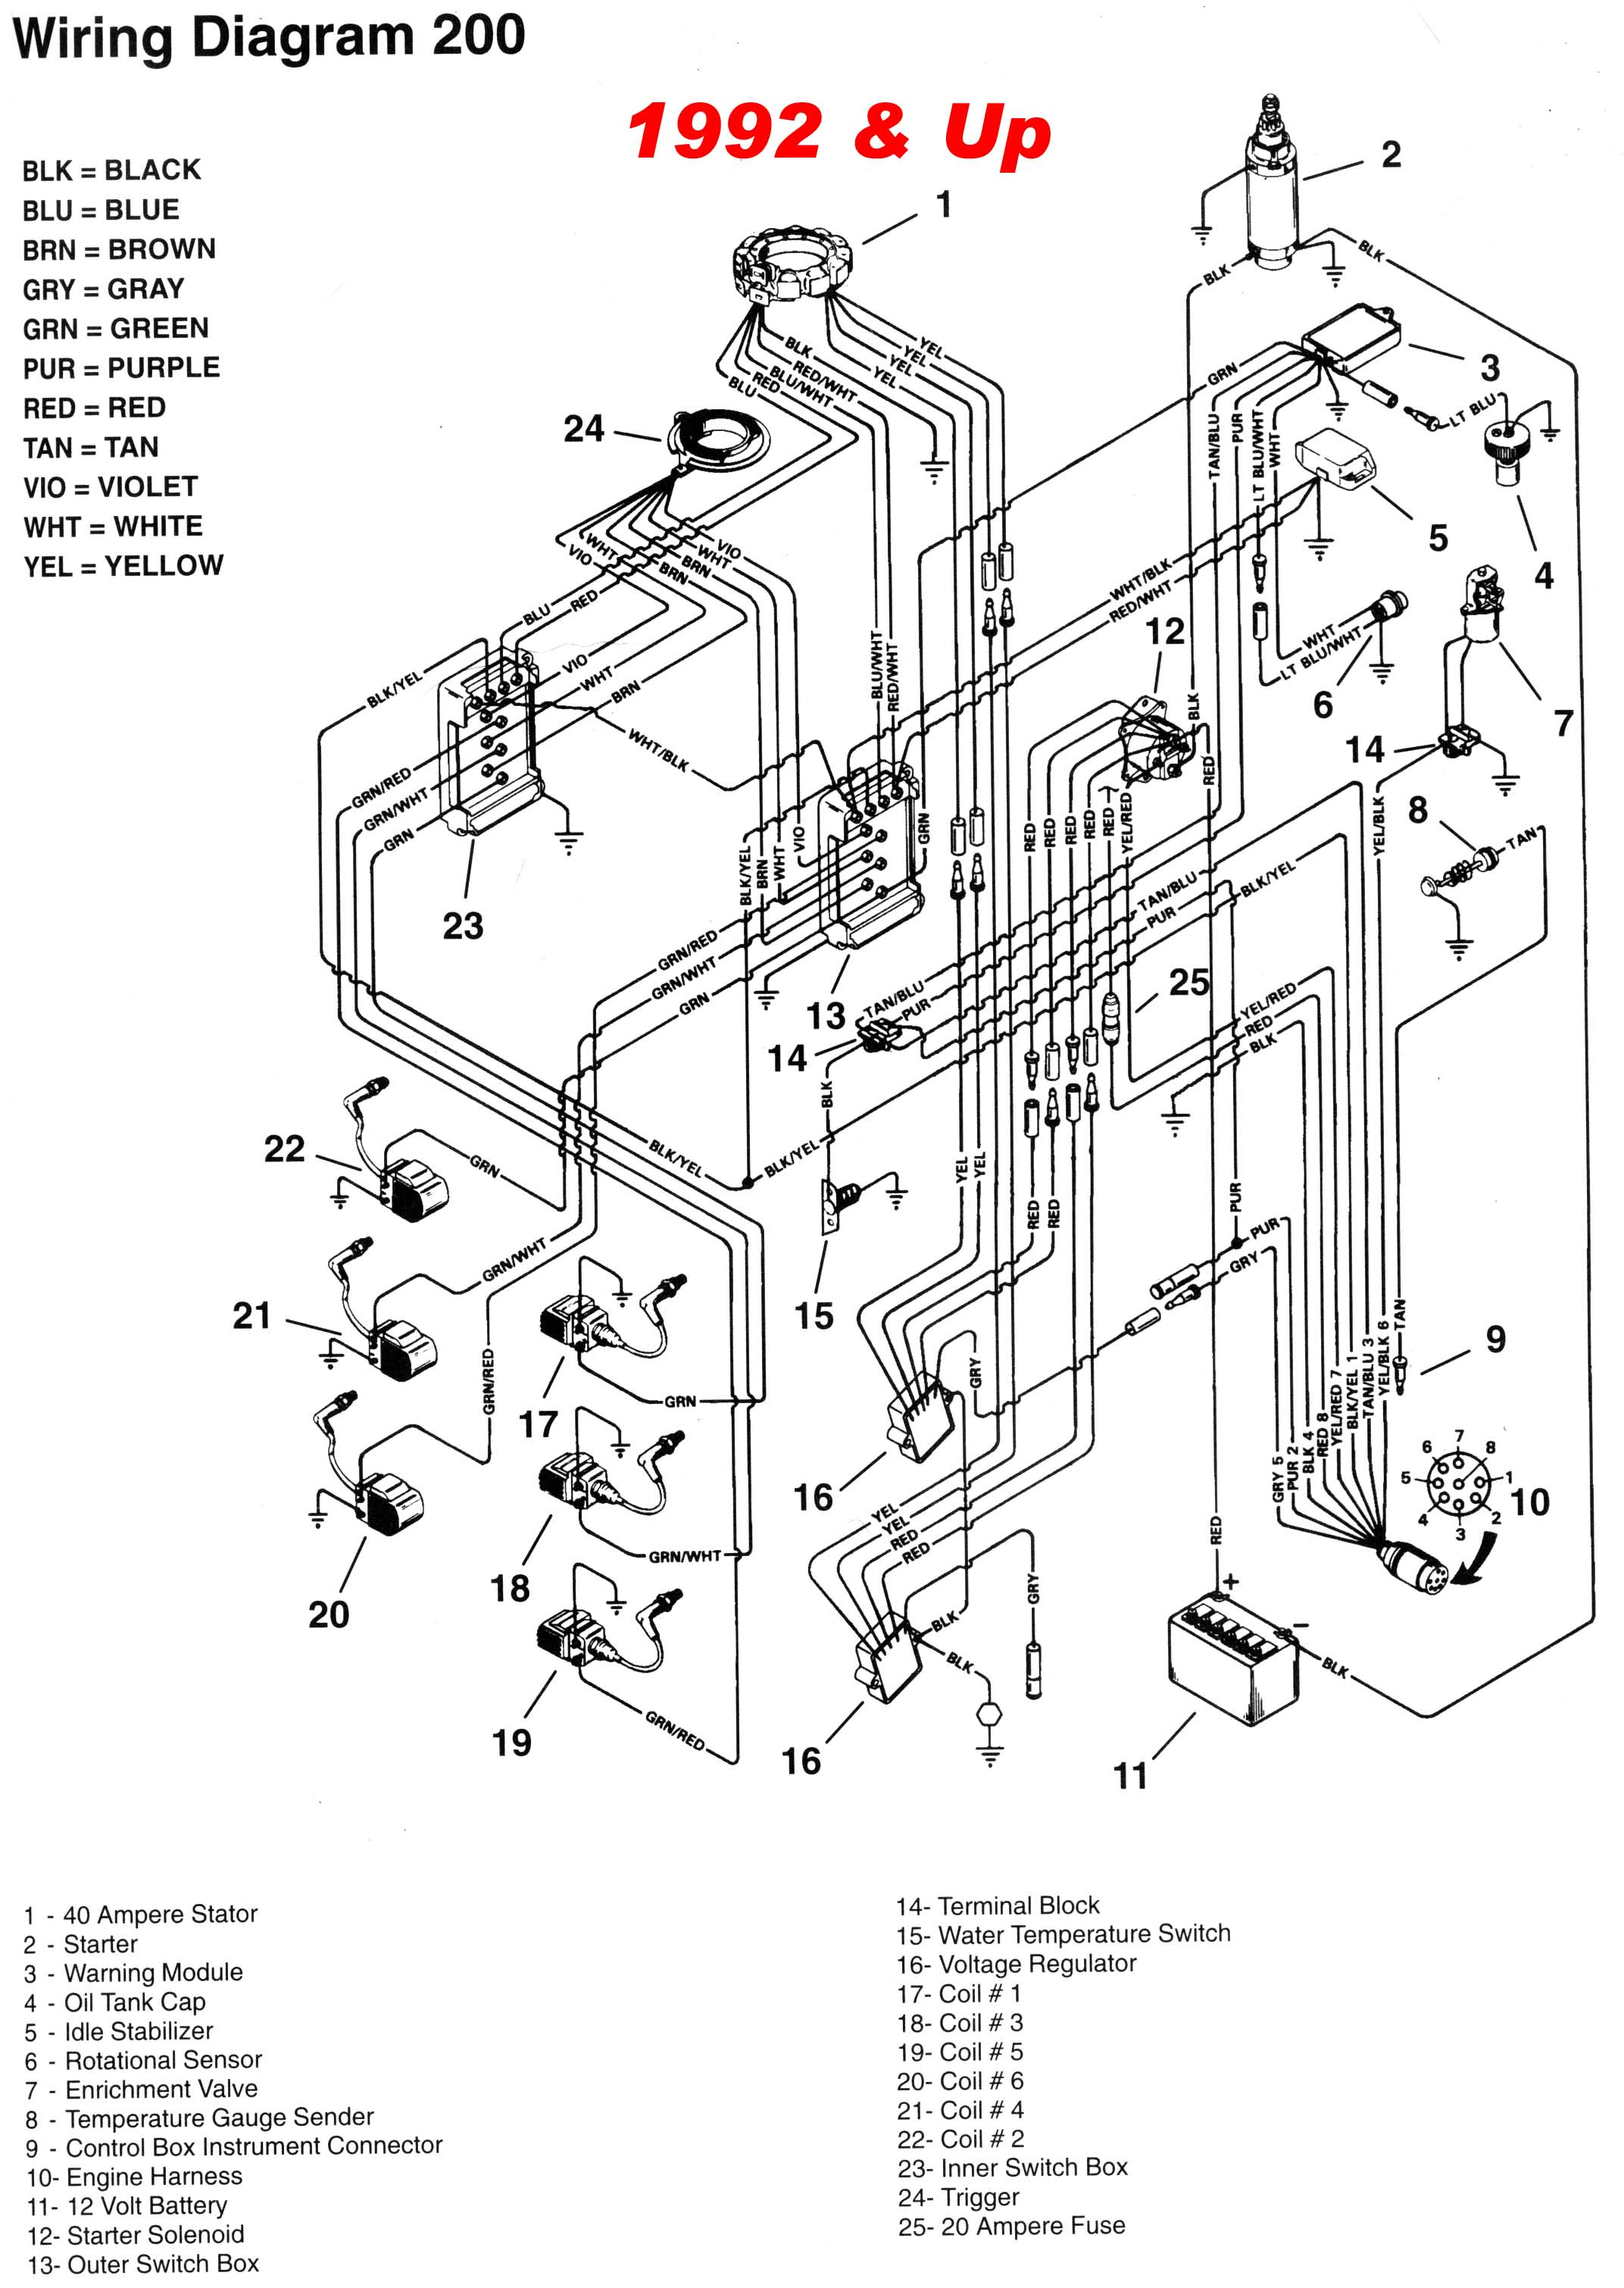 mercury_92up_200_wiring wiring diagram 2001 60 hp mercury outboard readingrat net yamaha ttr 225 wiring diagram at honlapkeszites.co